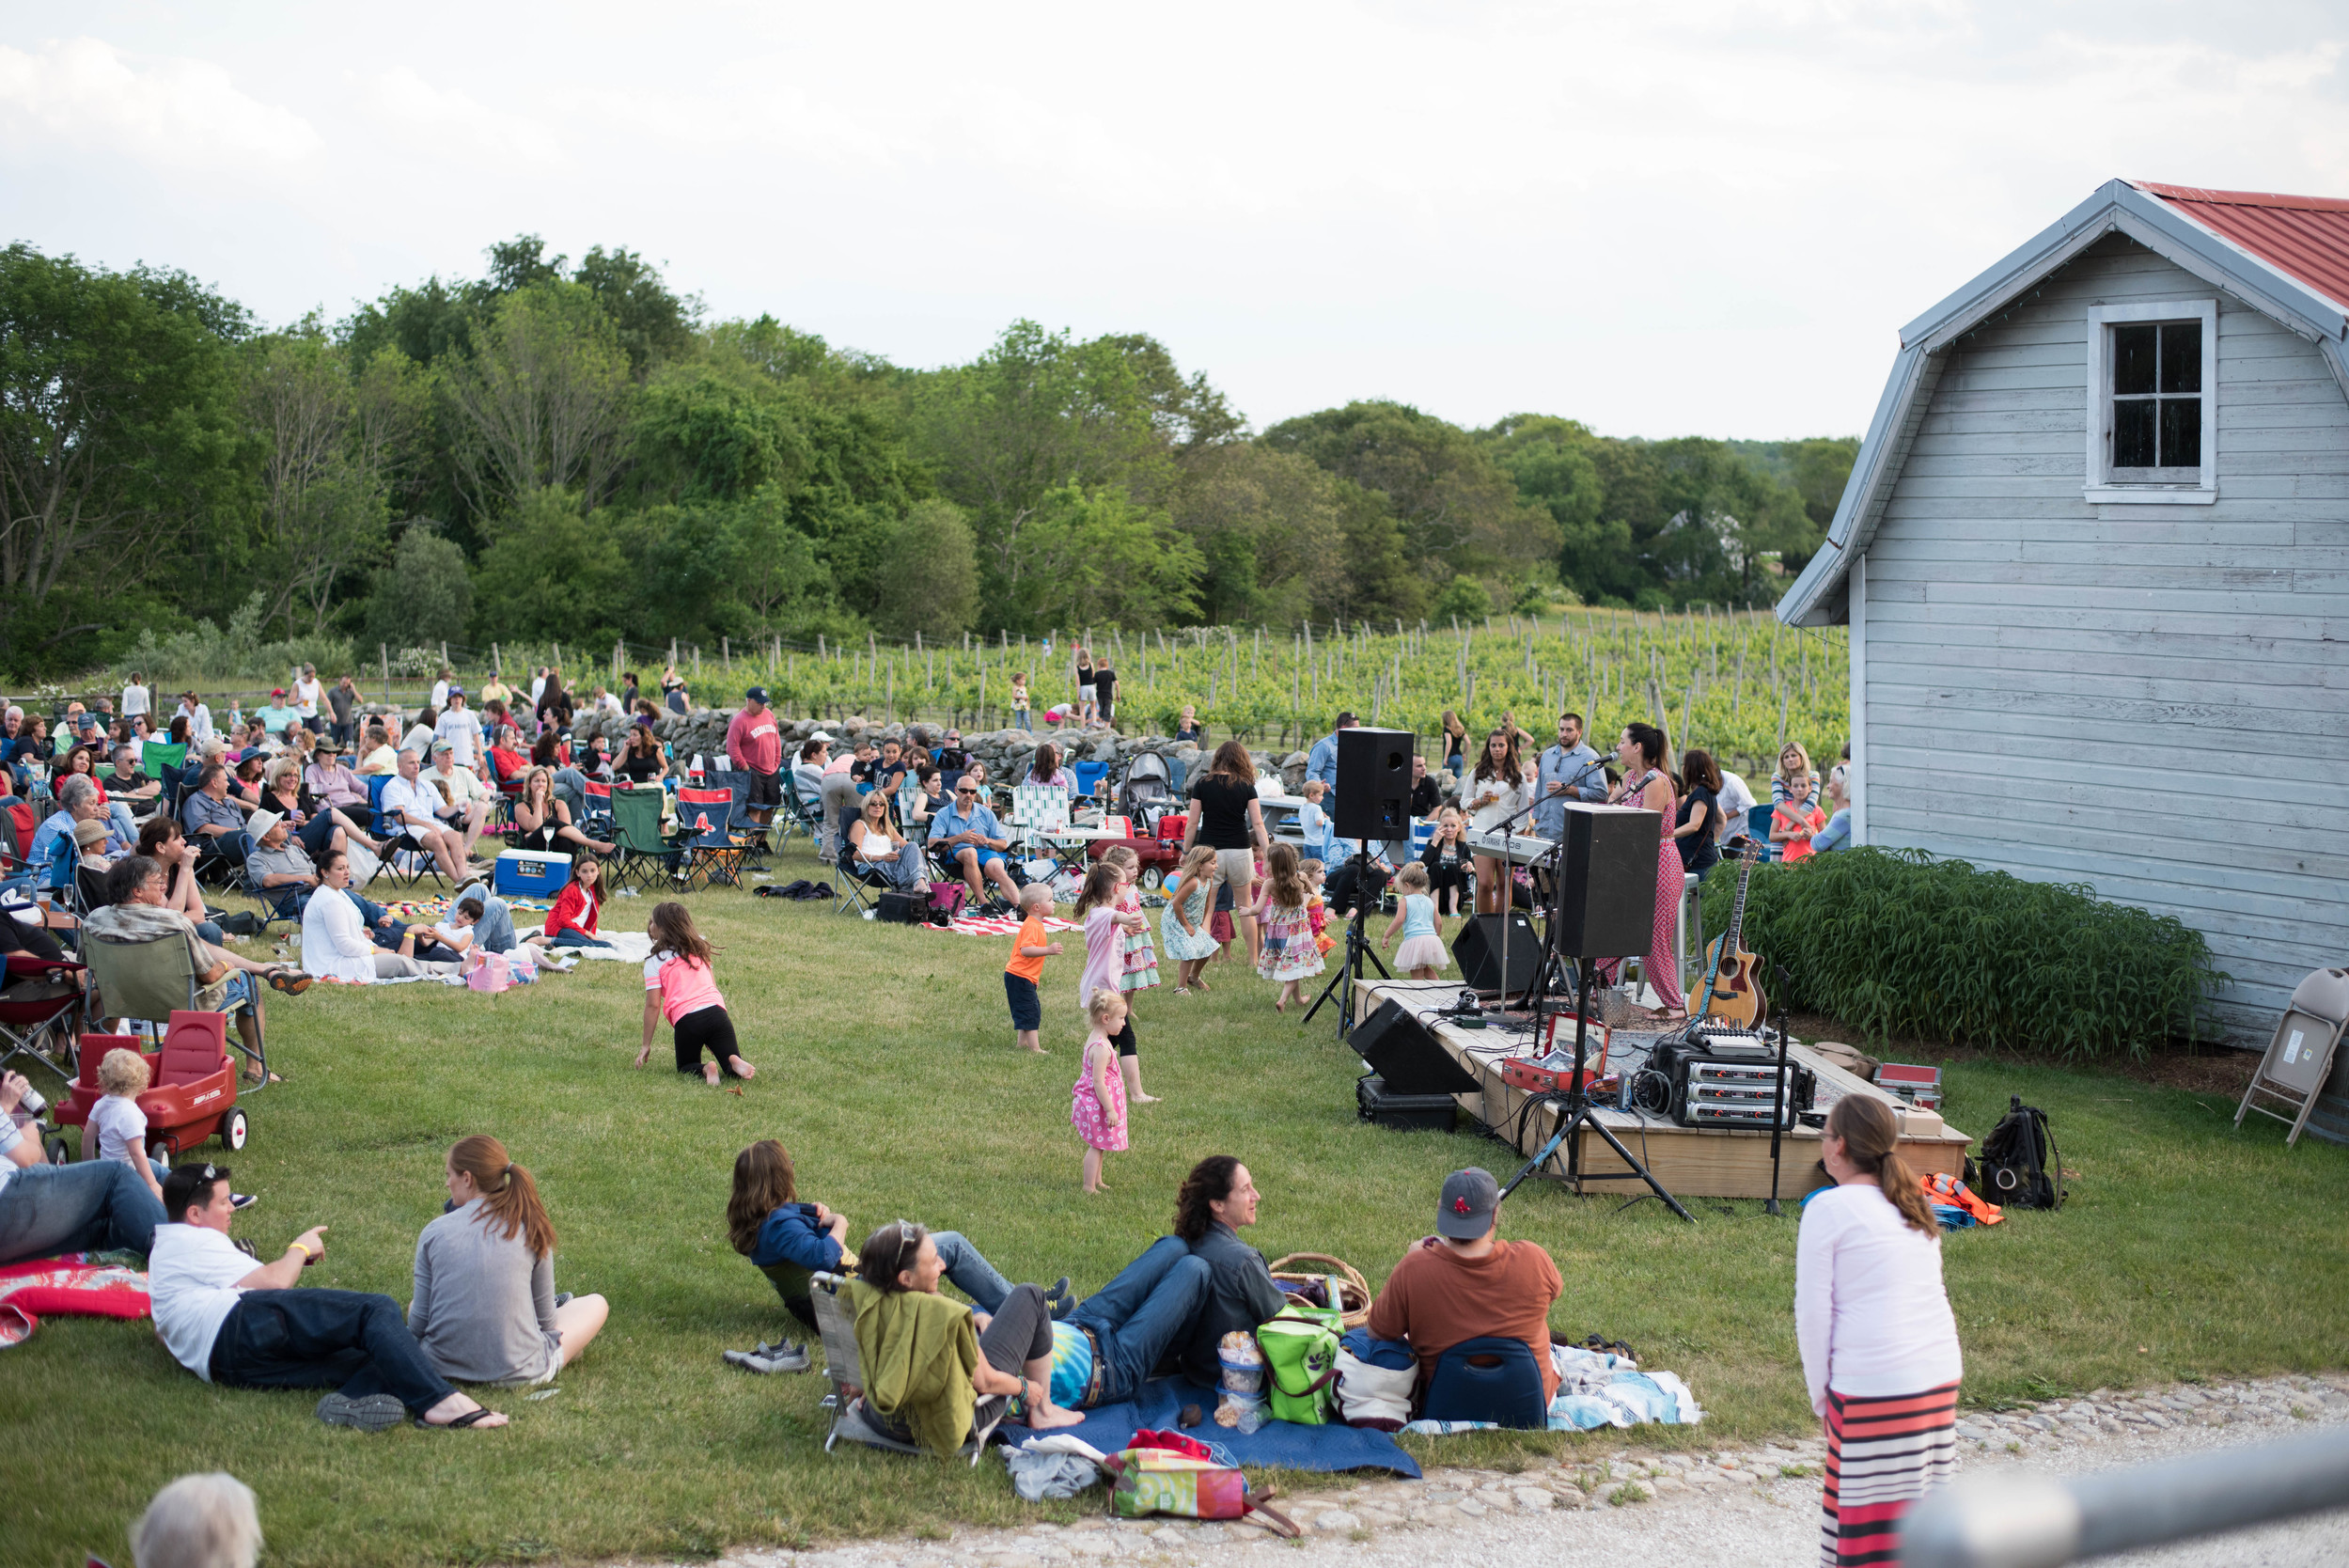 Spectators spread out across the lawn during a Sunset Music Series performance last June.